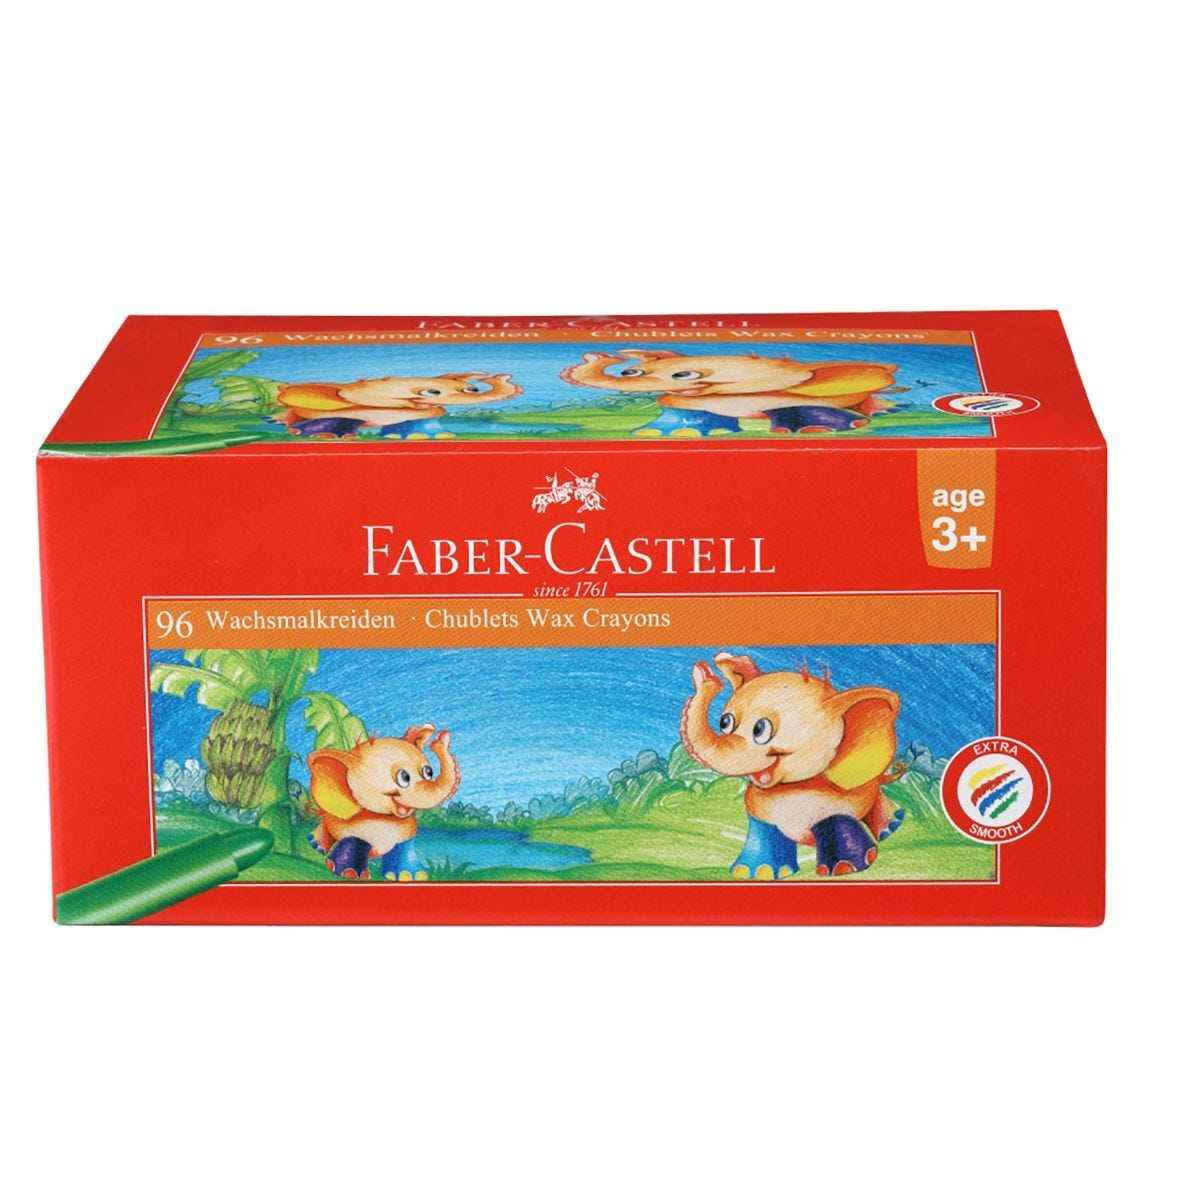 Faber-Castell Chublet Crayons Pack of 96 Assorted